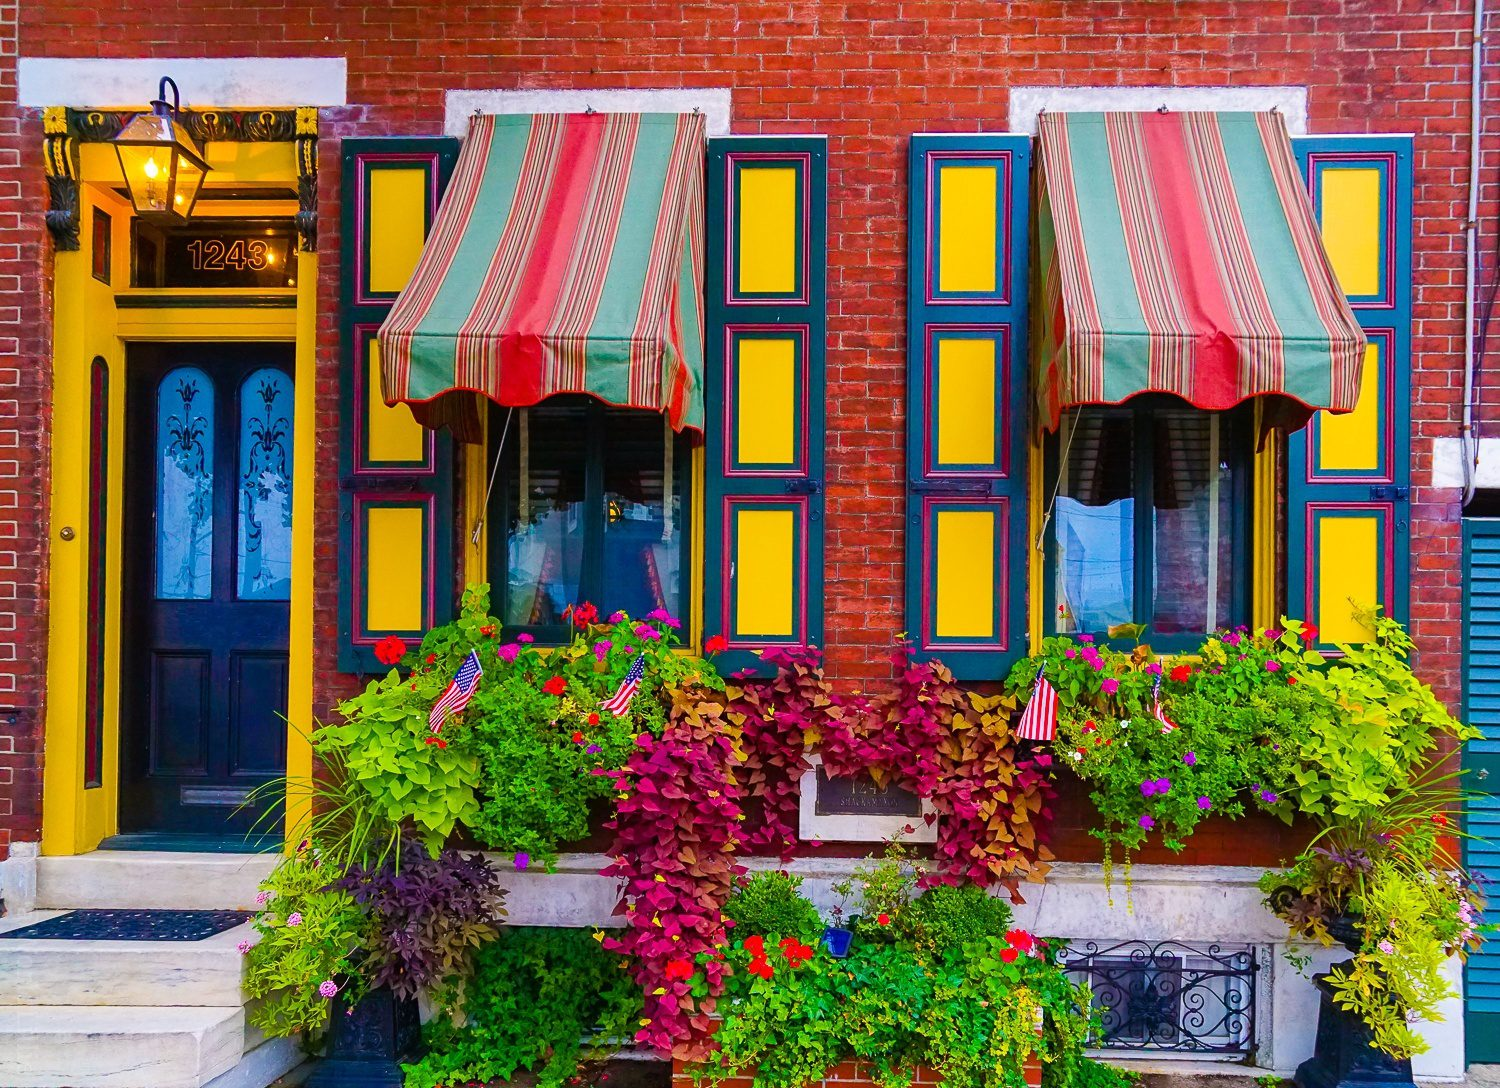 This Fishtown building isn't fishy, but it sure is flowery!